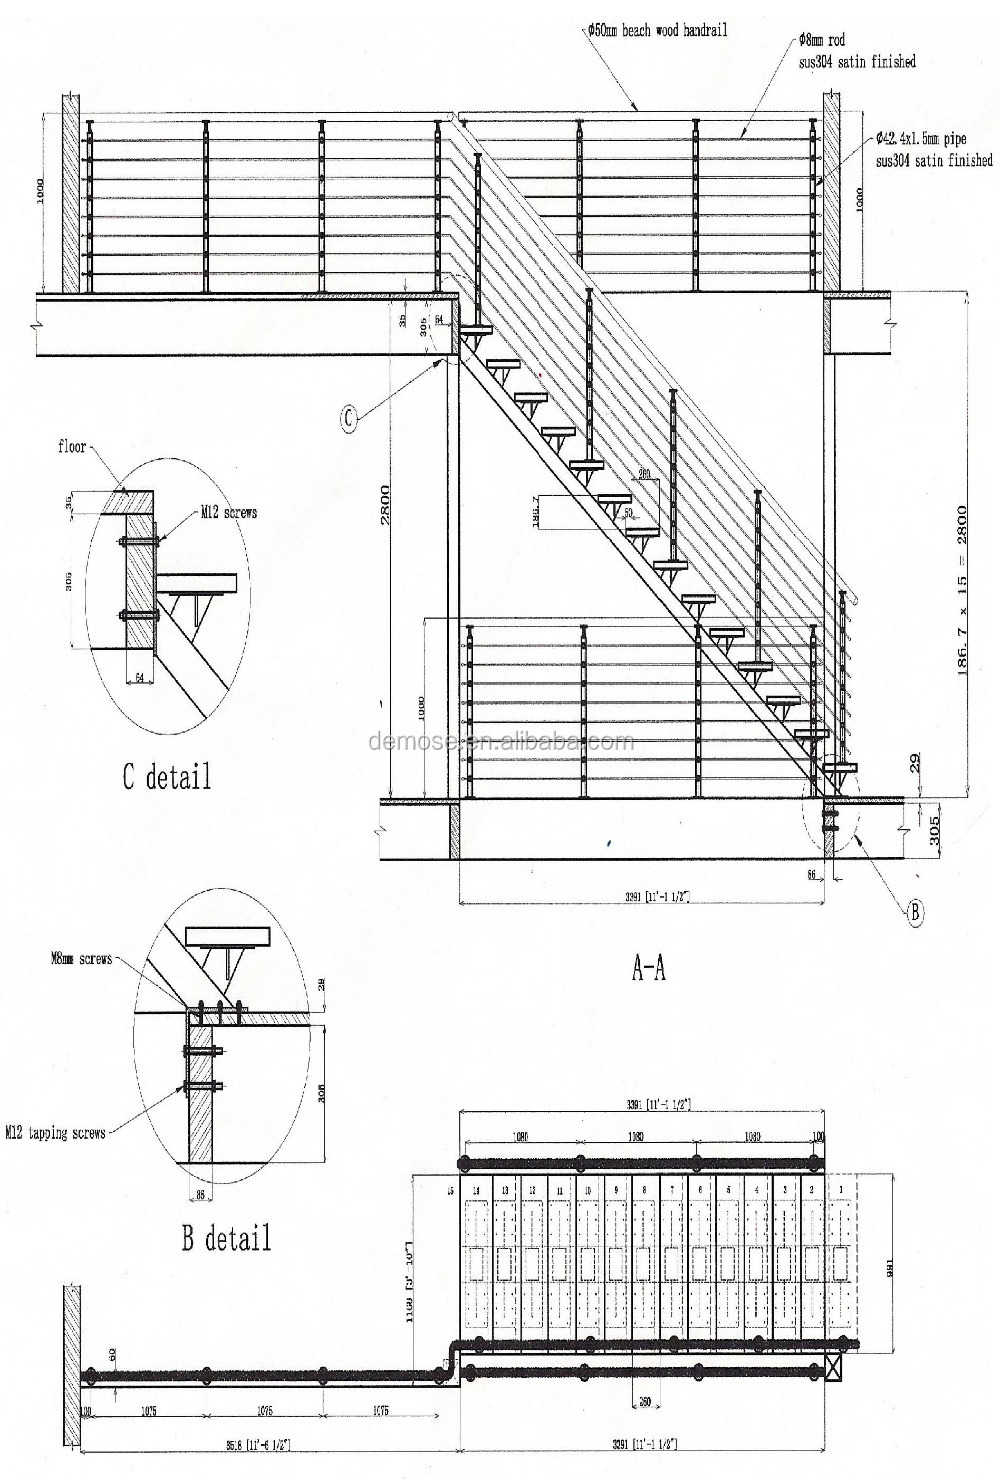 stylish stair handrail wire fence prices inox railing. Black Bedroom Furniture Sets. Home Design Ideas